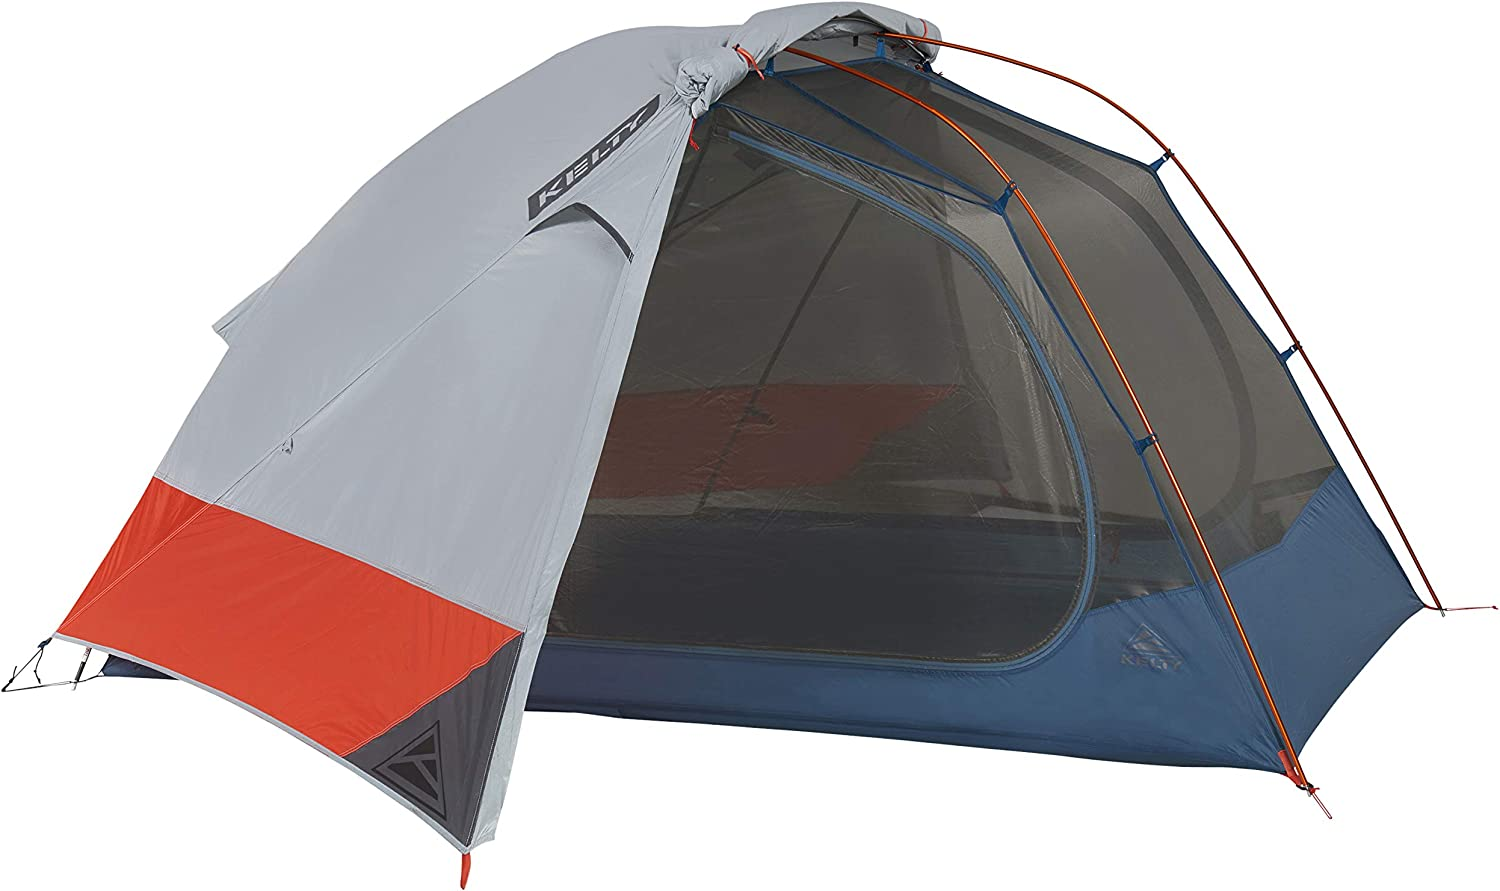 Kelty Dirt Motel 3 Season Lightweight Backpacking and Camping Tent (2019 - Updated Version of Kelty TN Tent) - 2 Vestibule Freestanding Design - Stargazing Fly, DAC Poles, Stuff Sack Included